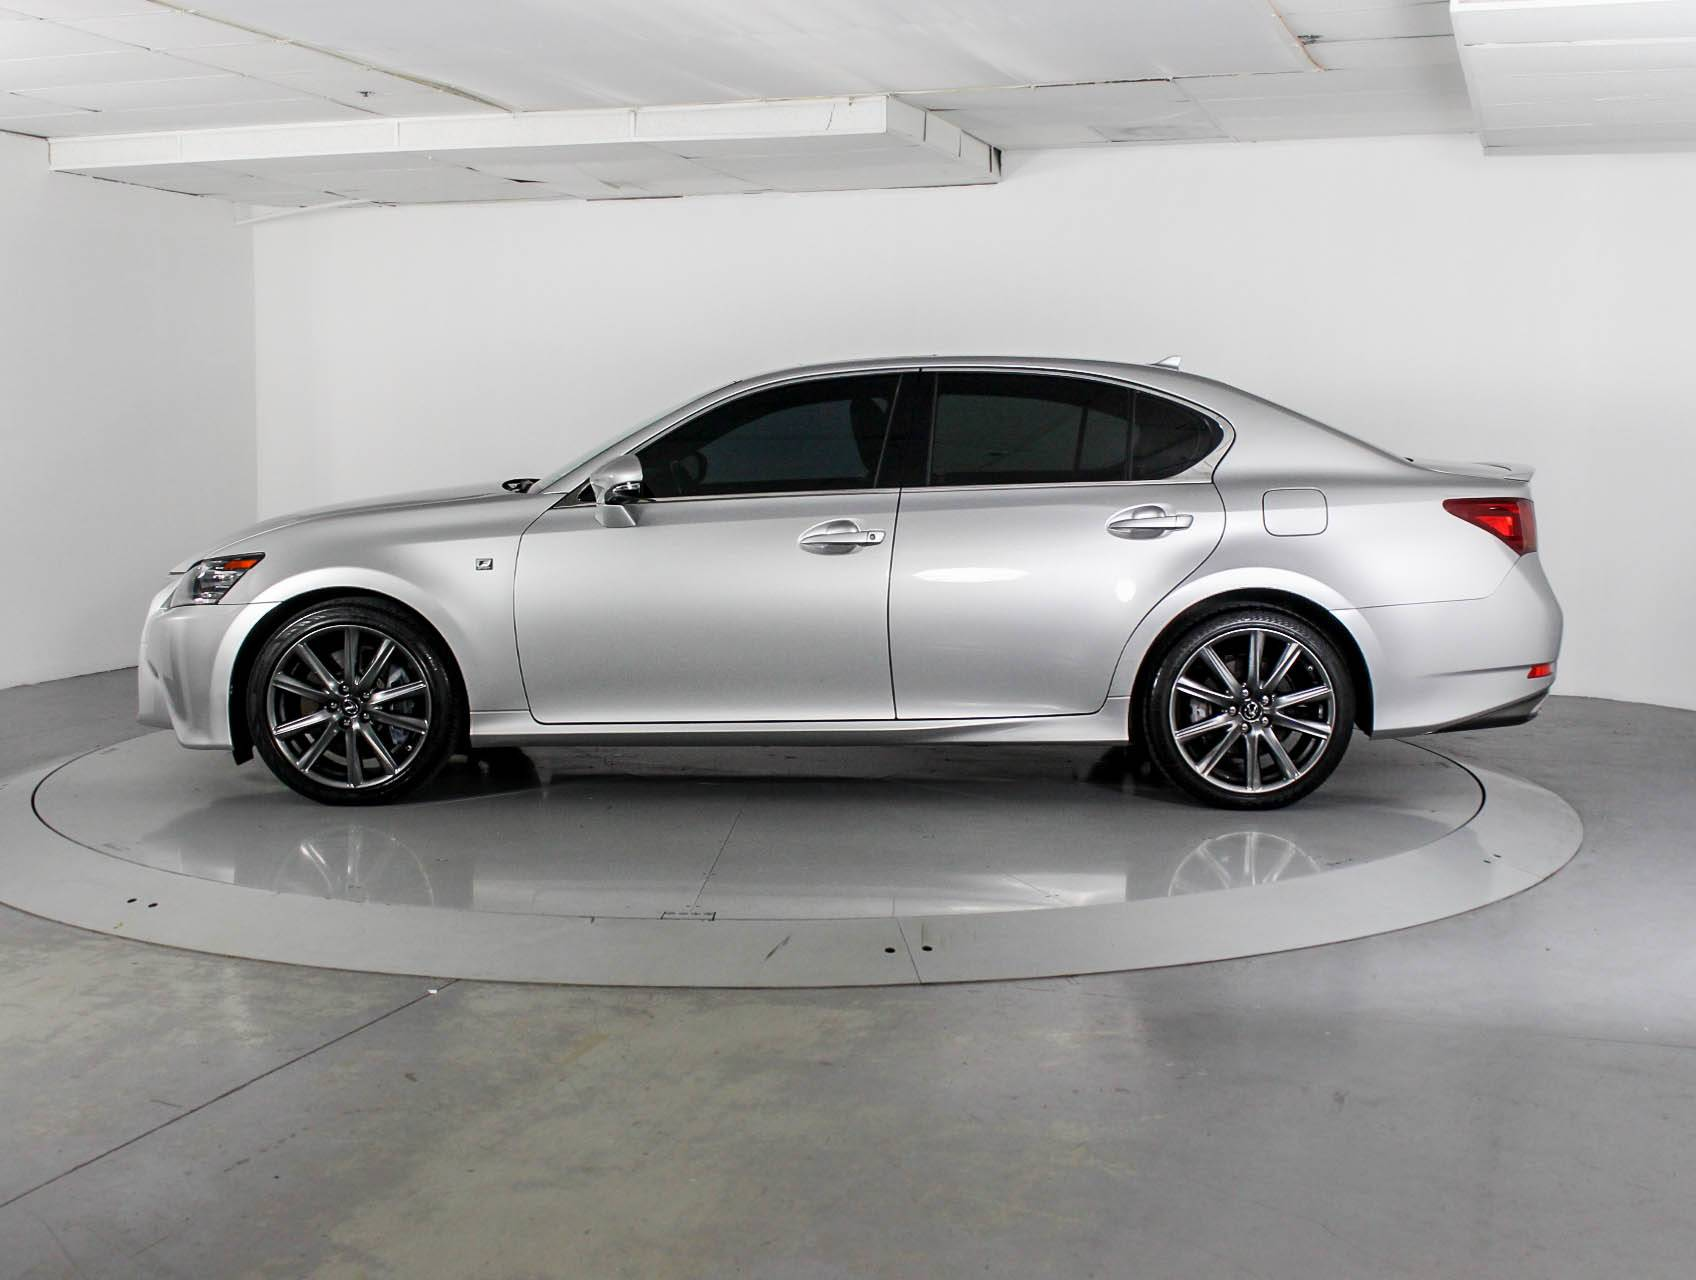 Used 2014 LEXUS GS 350 F SPORT Sedan for sale in WEST PALM